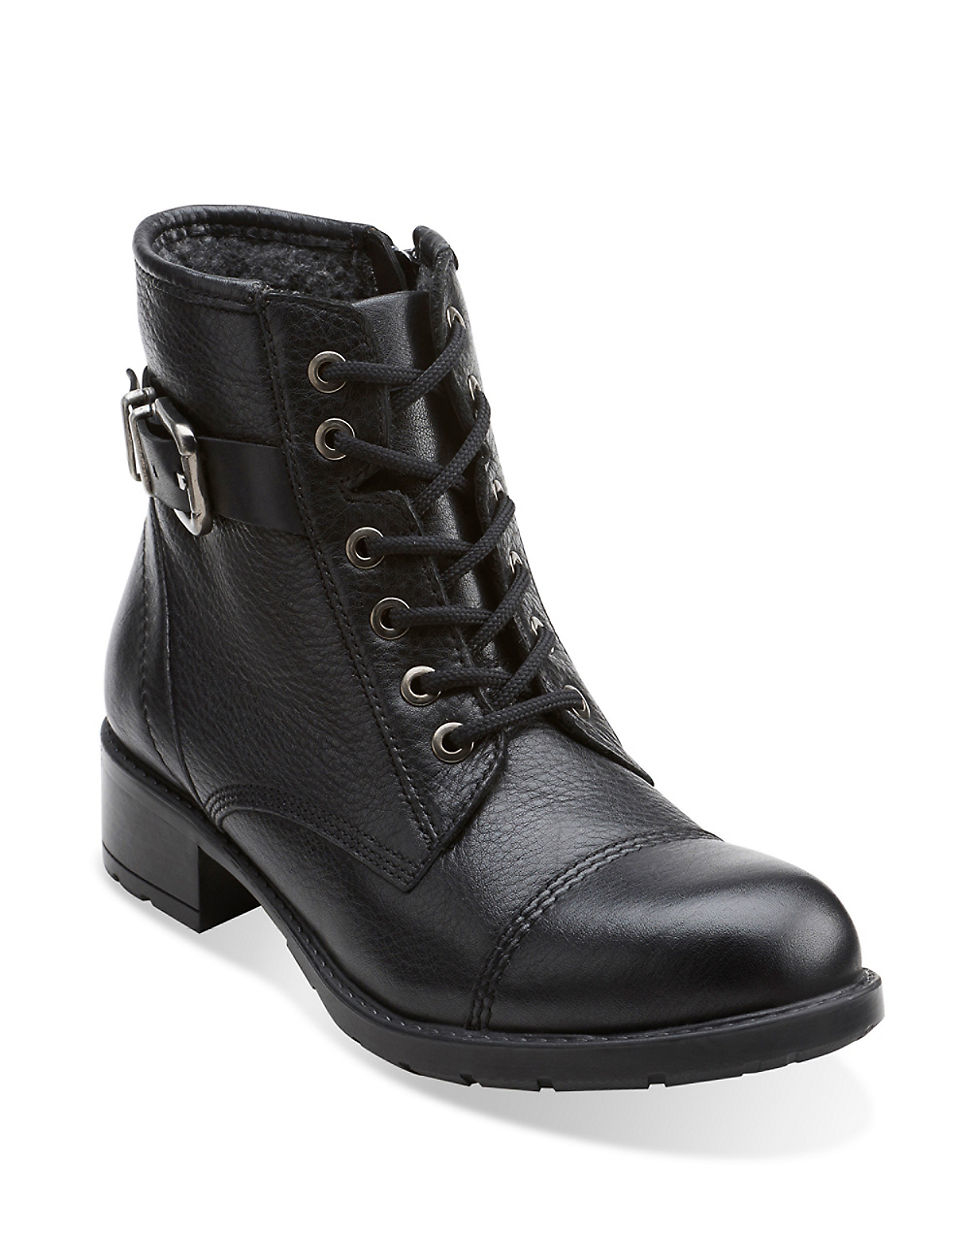 clarks swansea ledge sherpa lined leather combat boots in. Black Bedroom Furniture Sets. Home Design Ideas